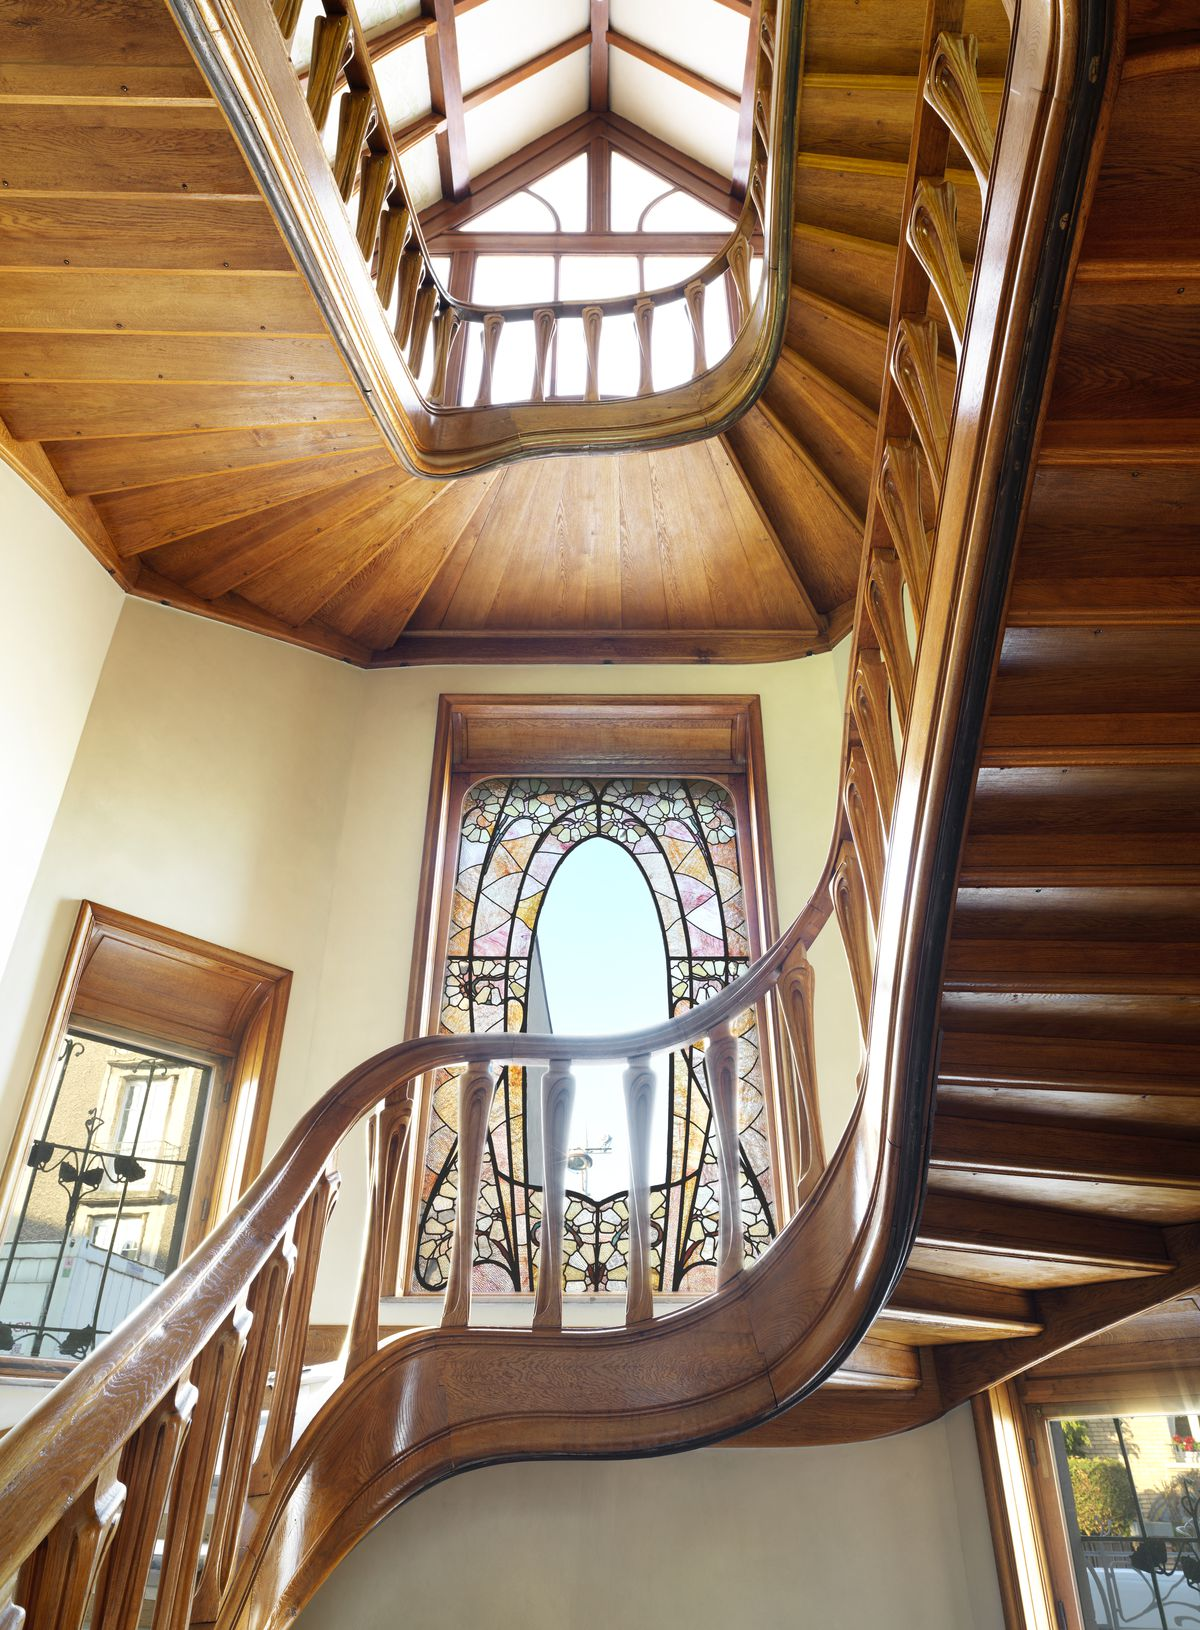 Curved oak staircase in entryway.